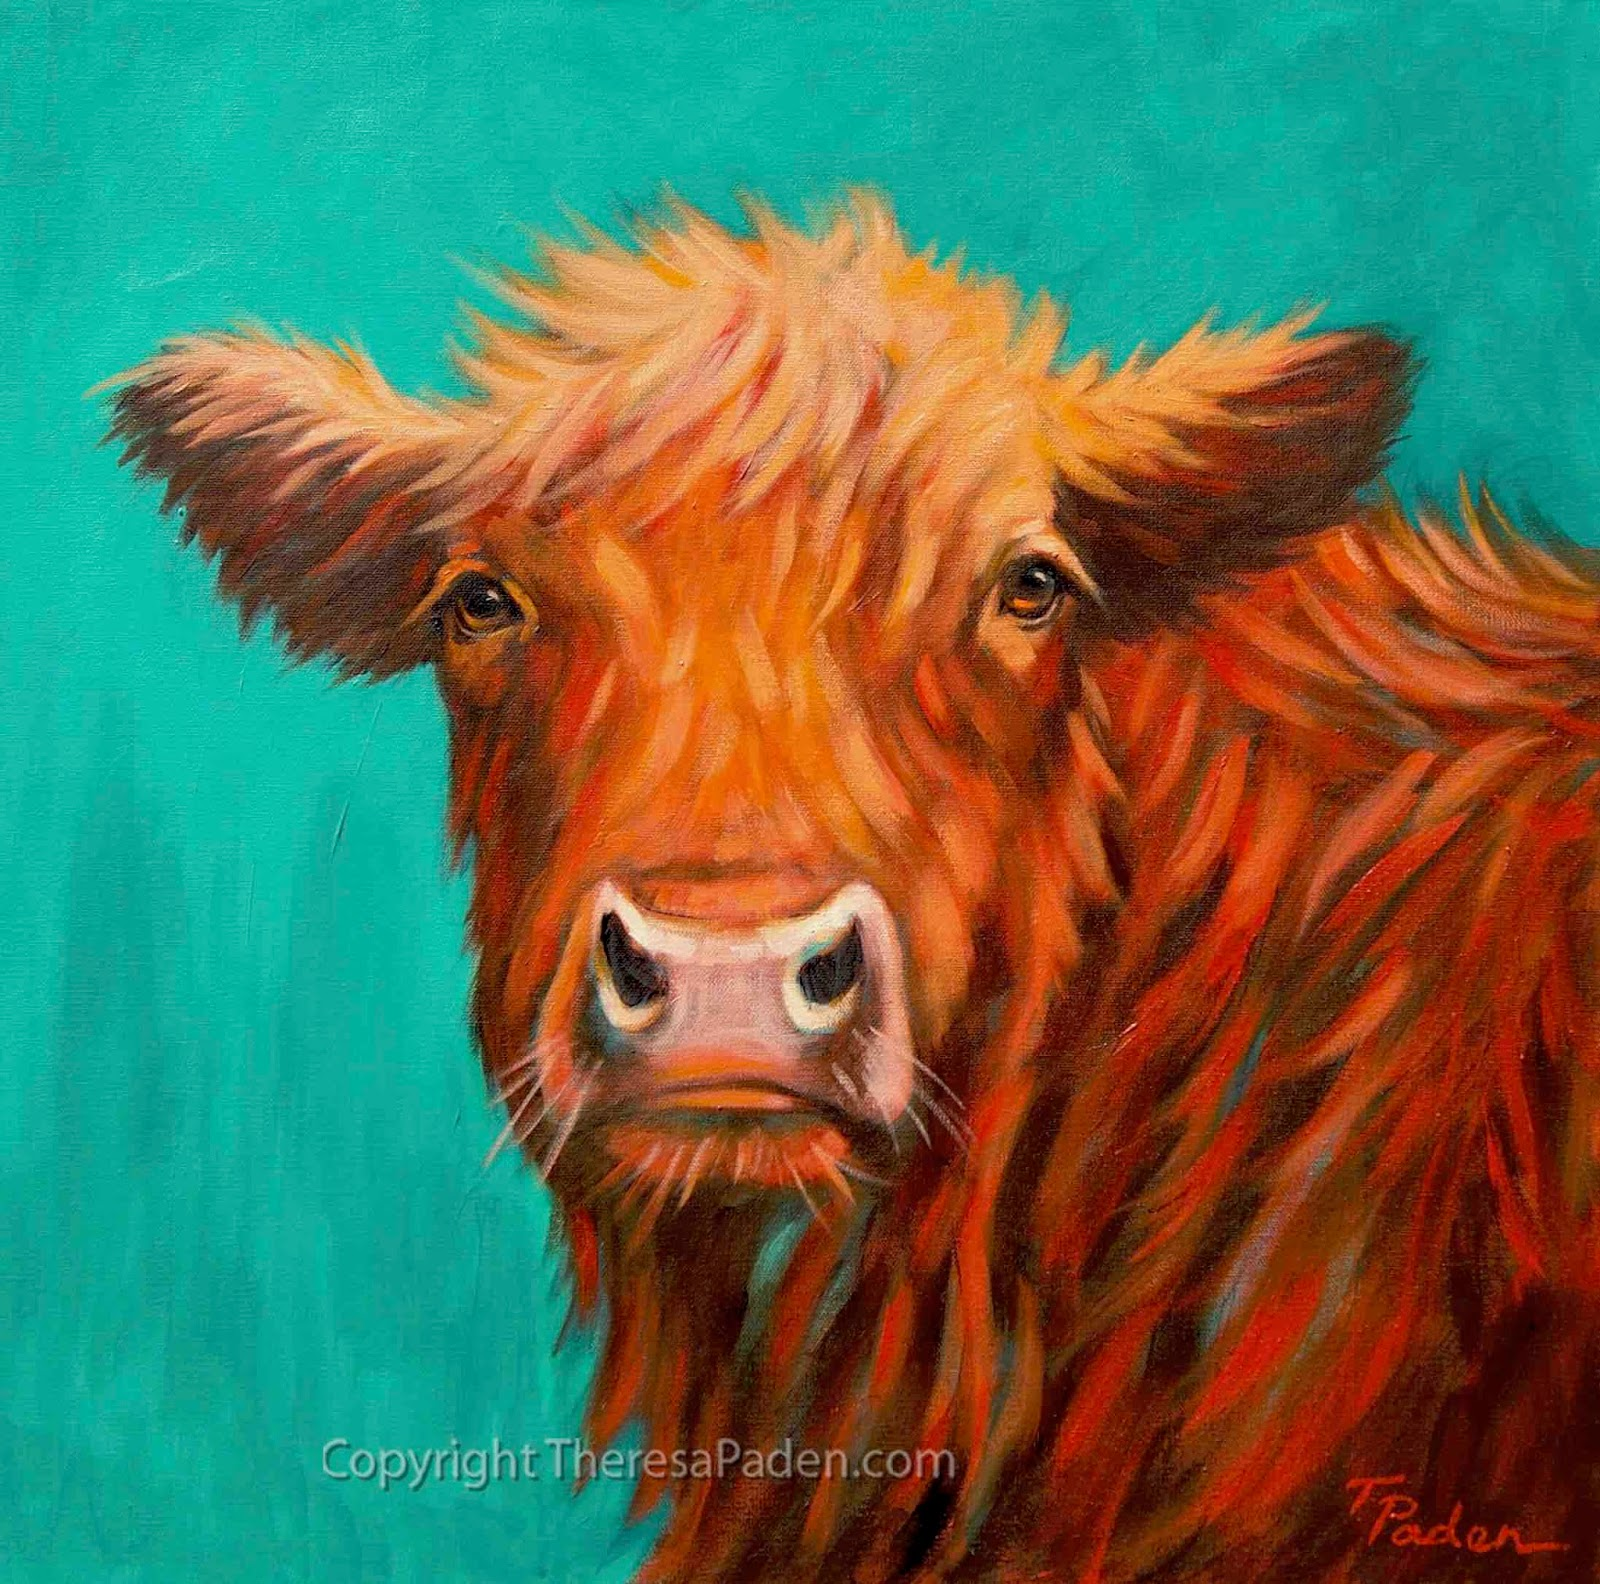 Paintings by Theresa Paden: Western Art Cow Paintings by